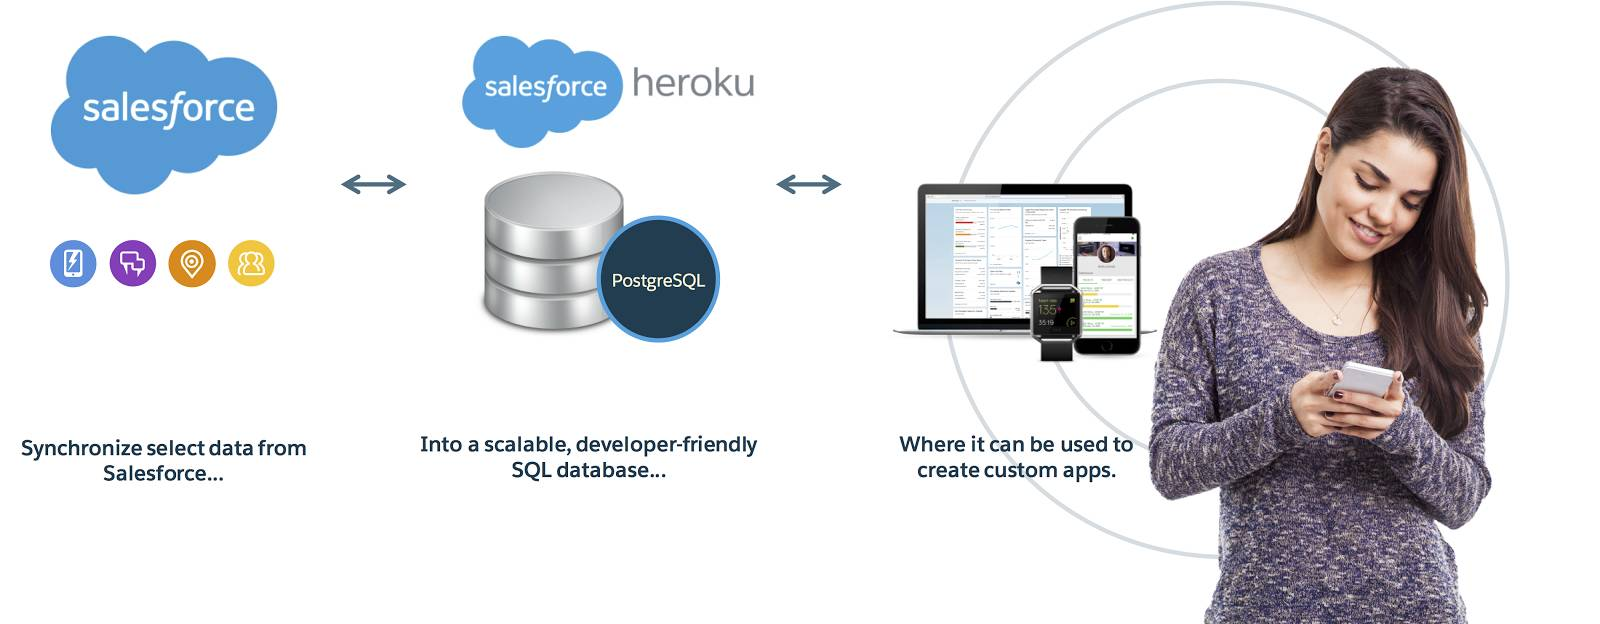 An infographic with select data from Salesforce connected to a scalable SQL database using Heroku, in turn connected to a customer using custom apps